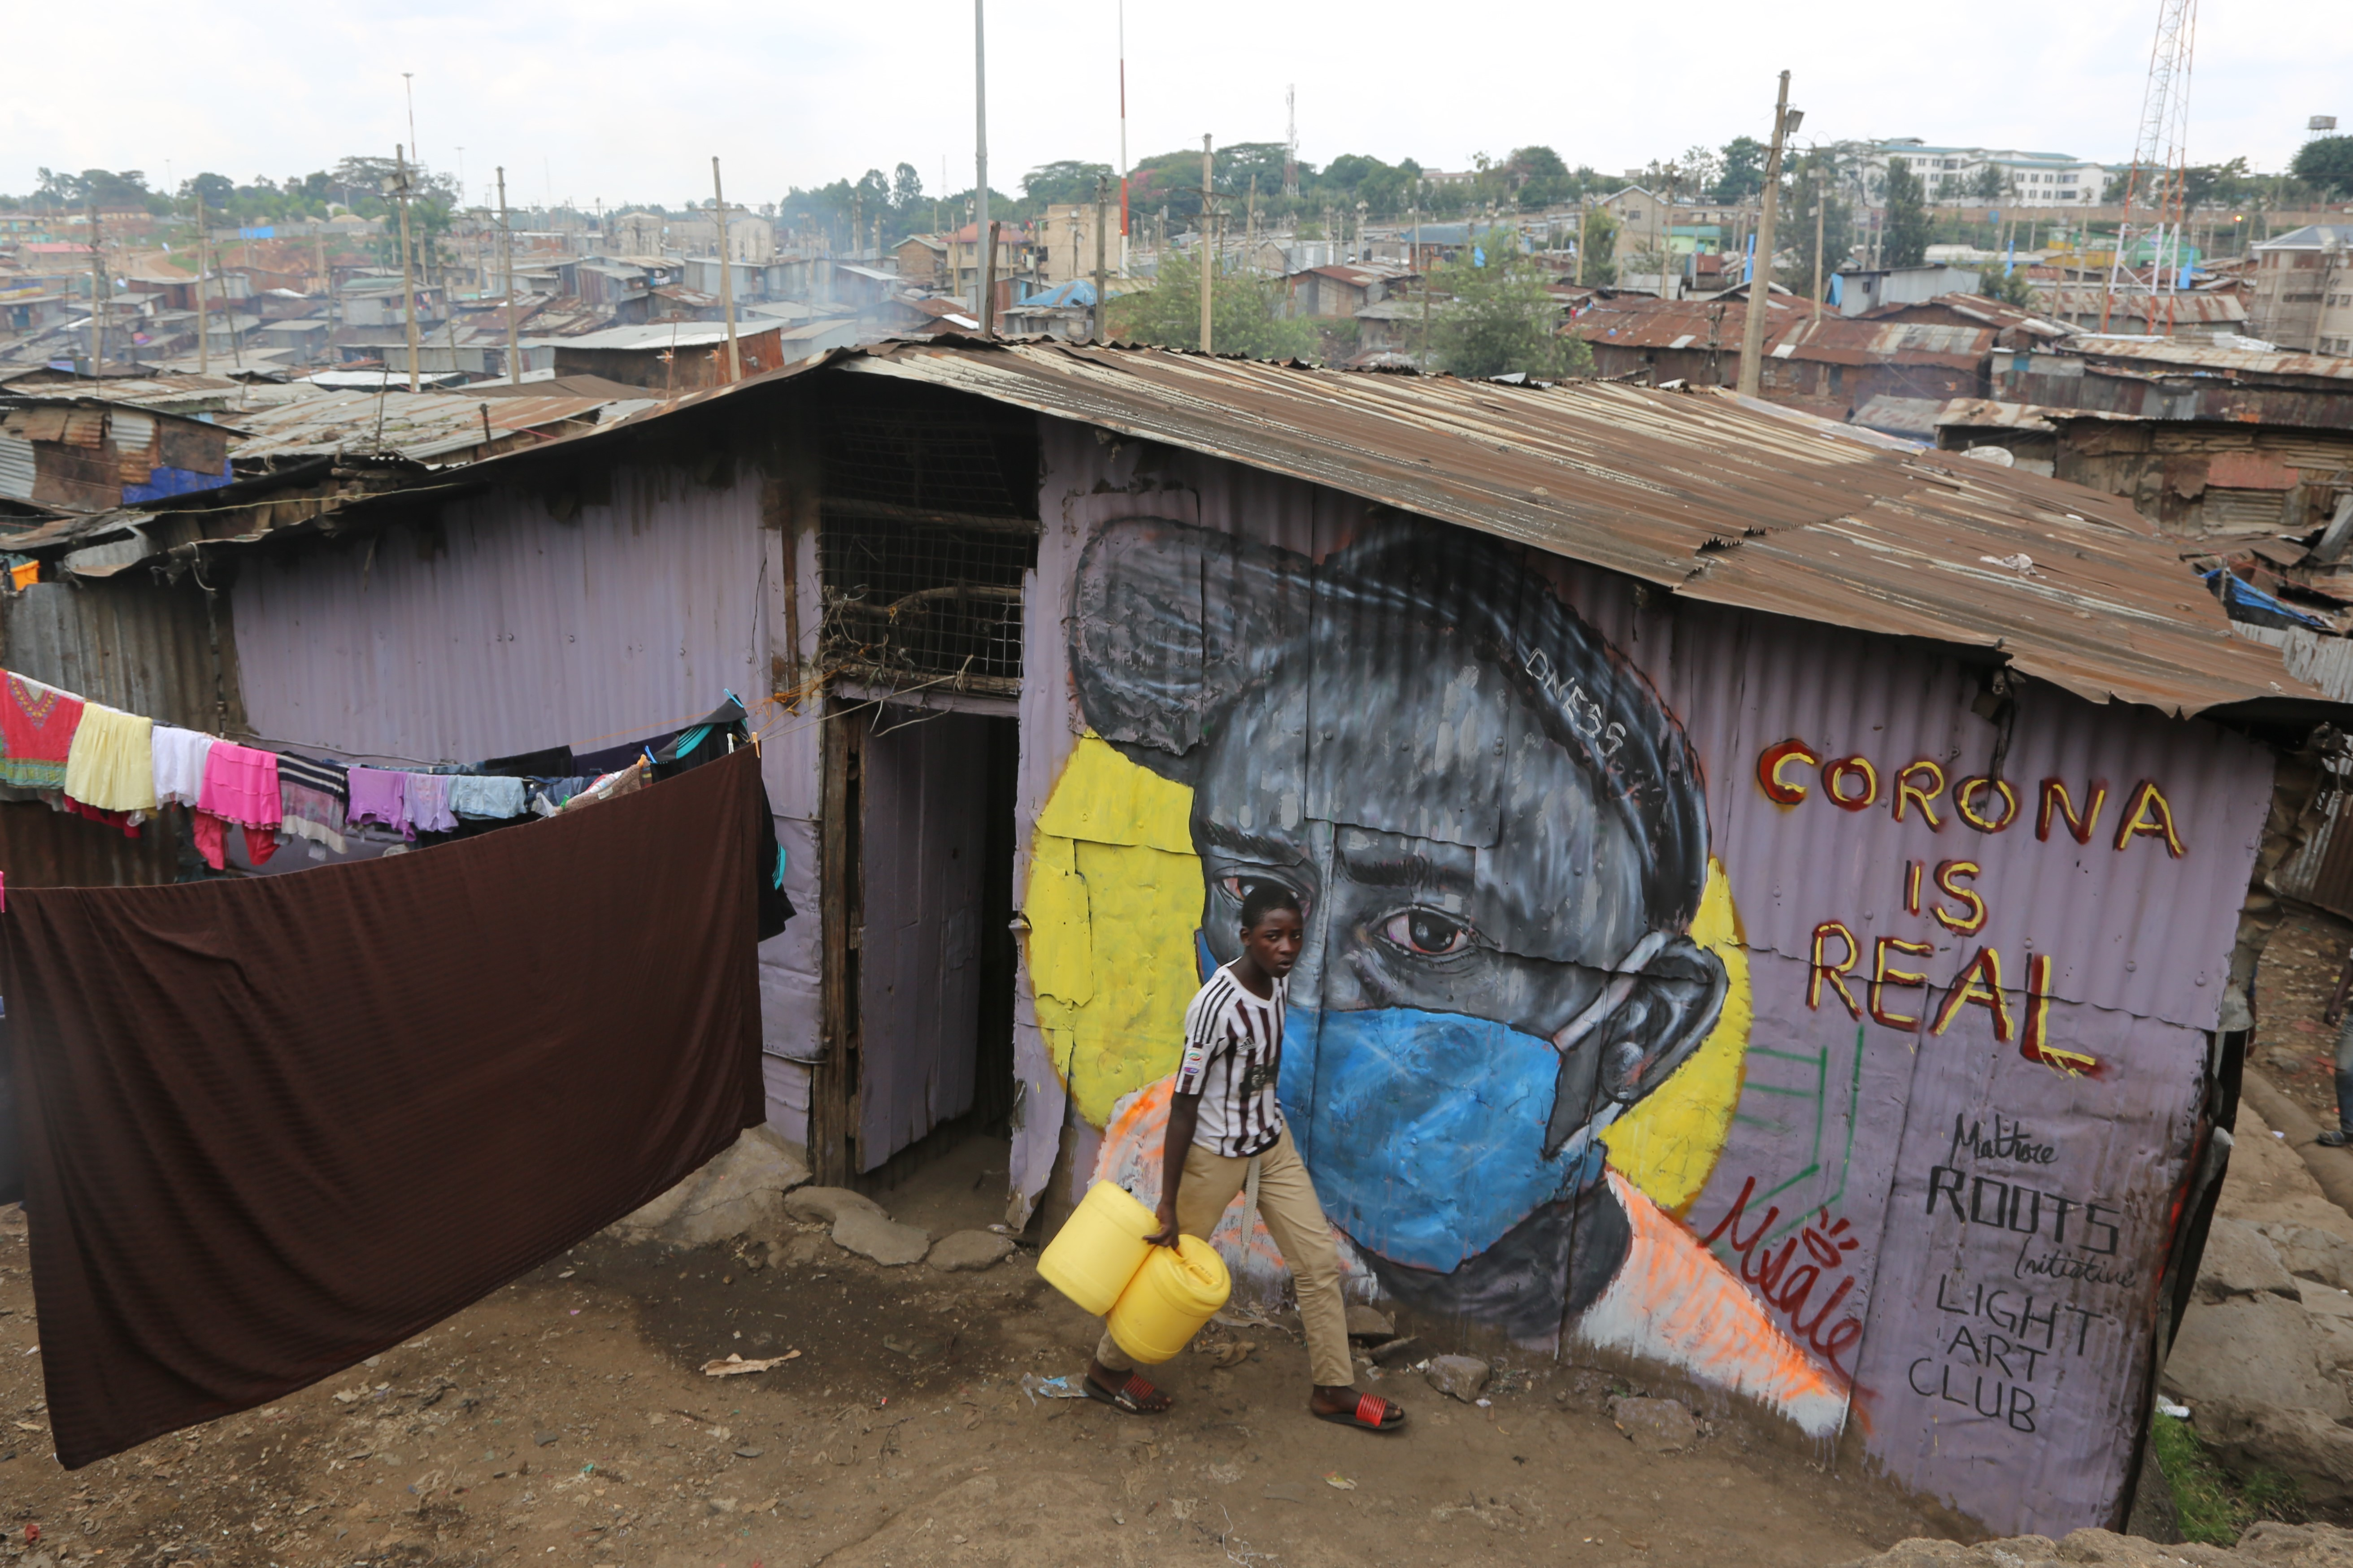 A mural in Nairobi's informal settlement of Mathare creating awareness of the importance of wearing masks to combat COVID-19